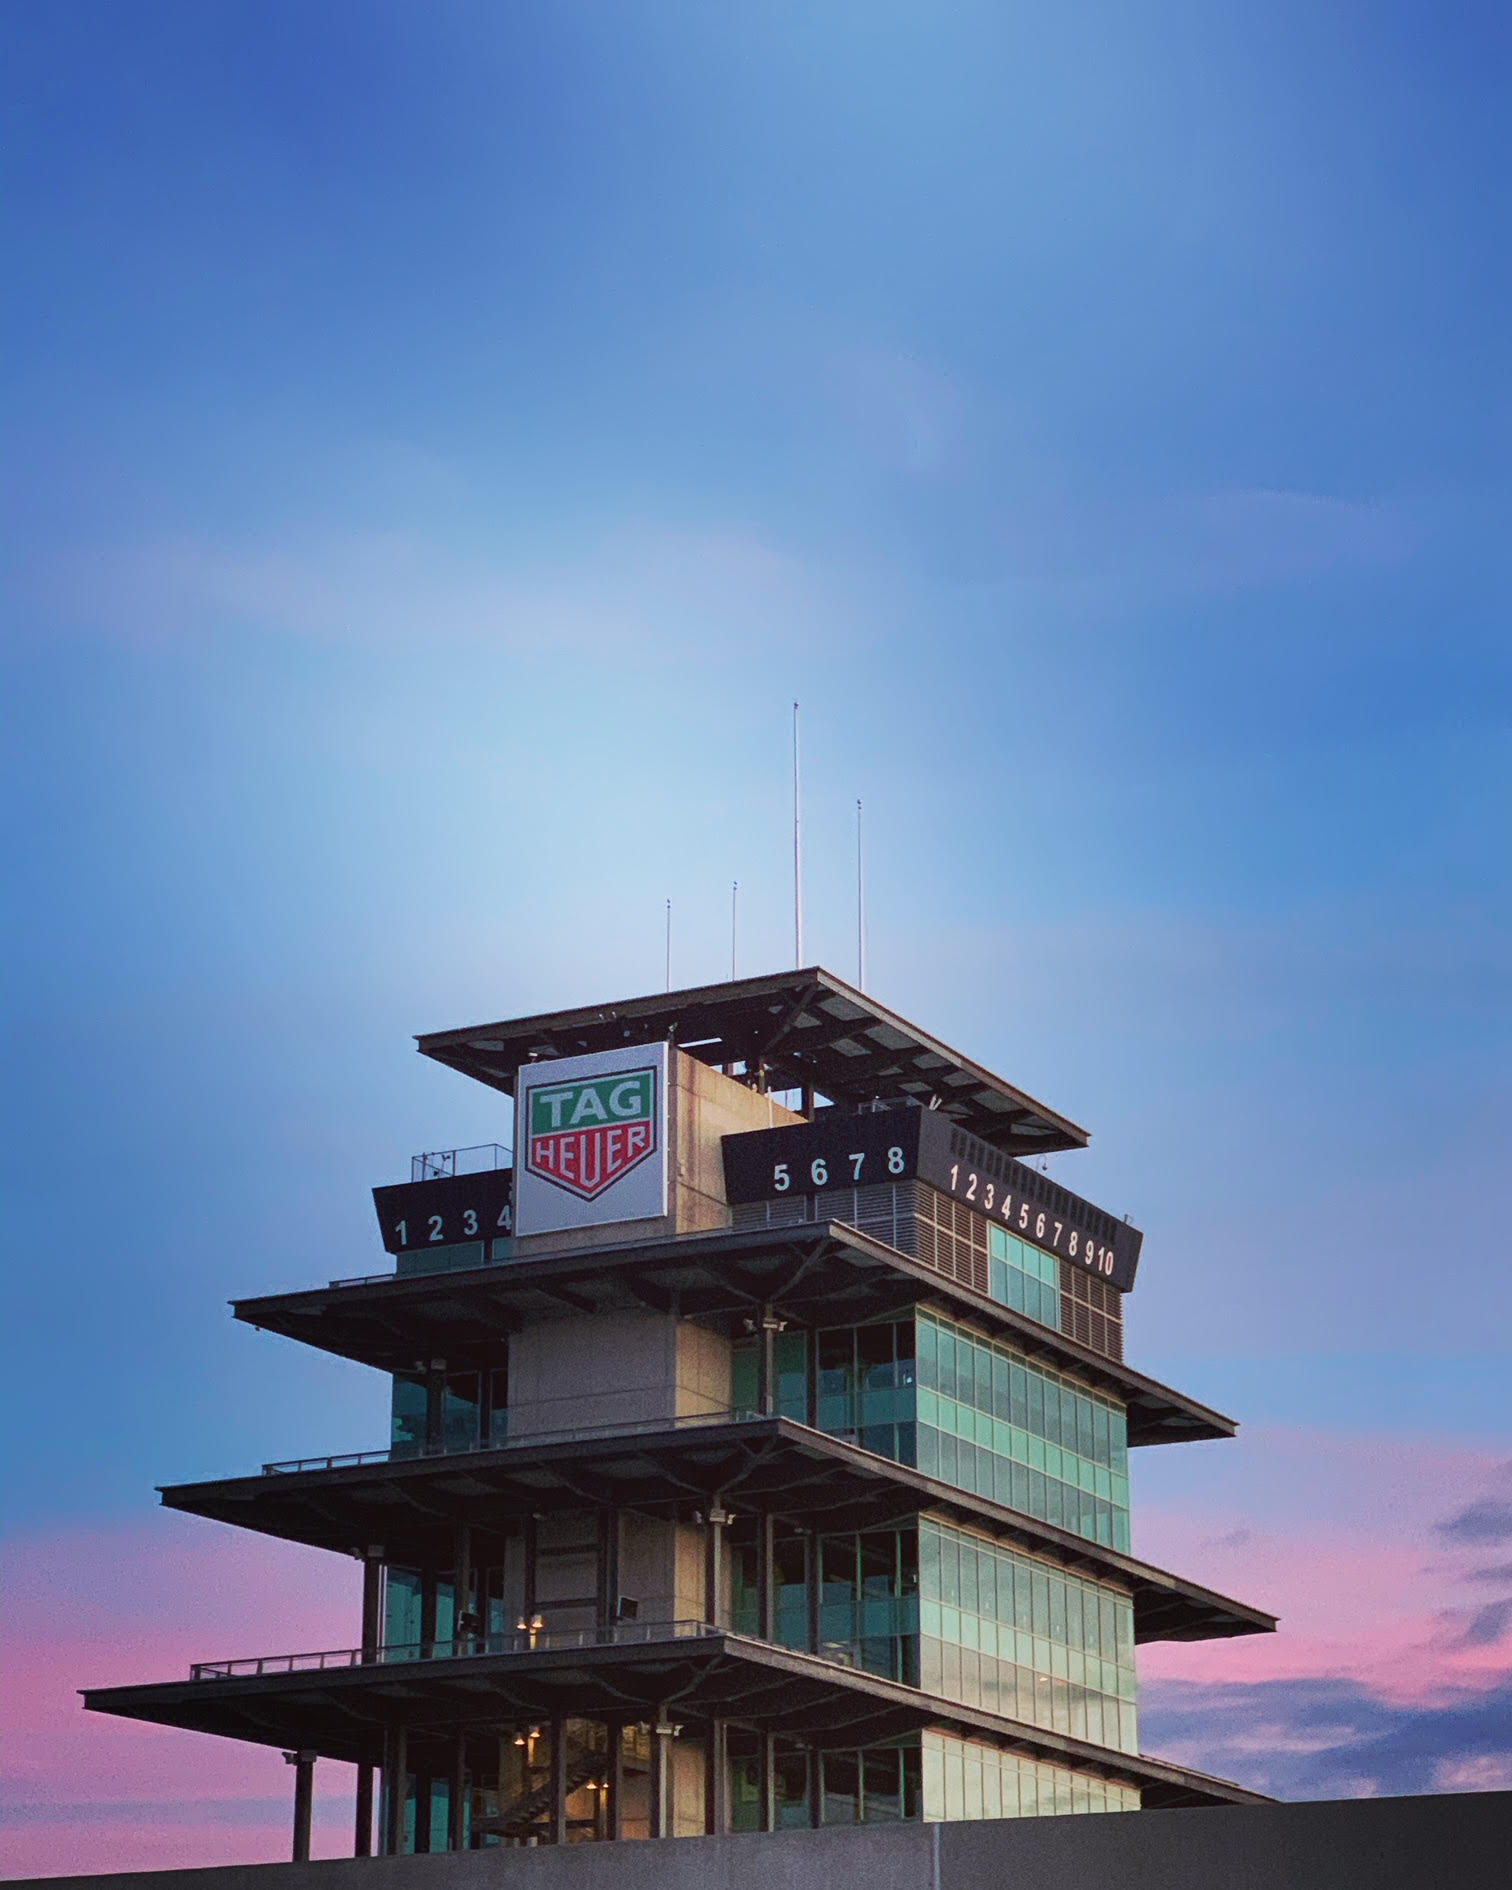 Another one of the iconic structures at IMS, the Pagoda.